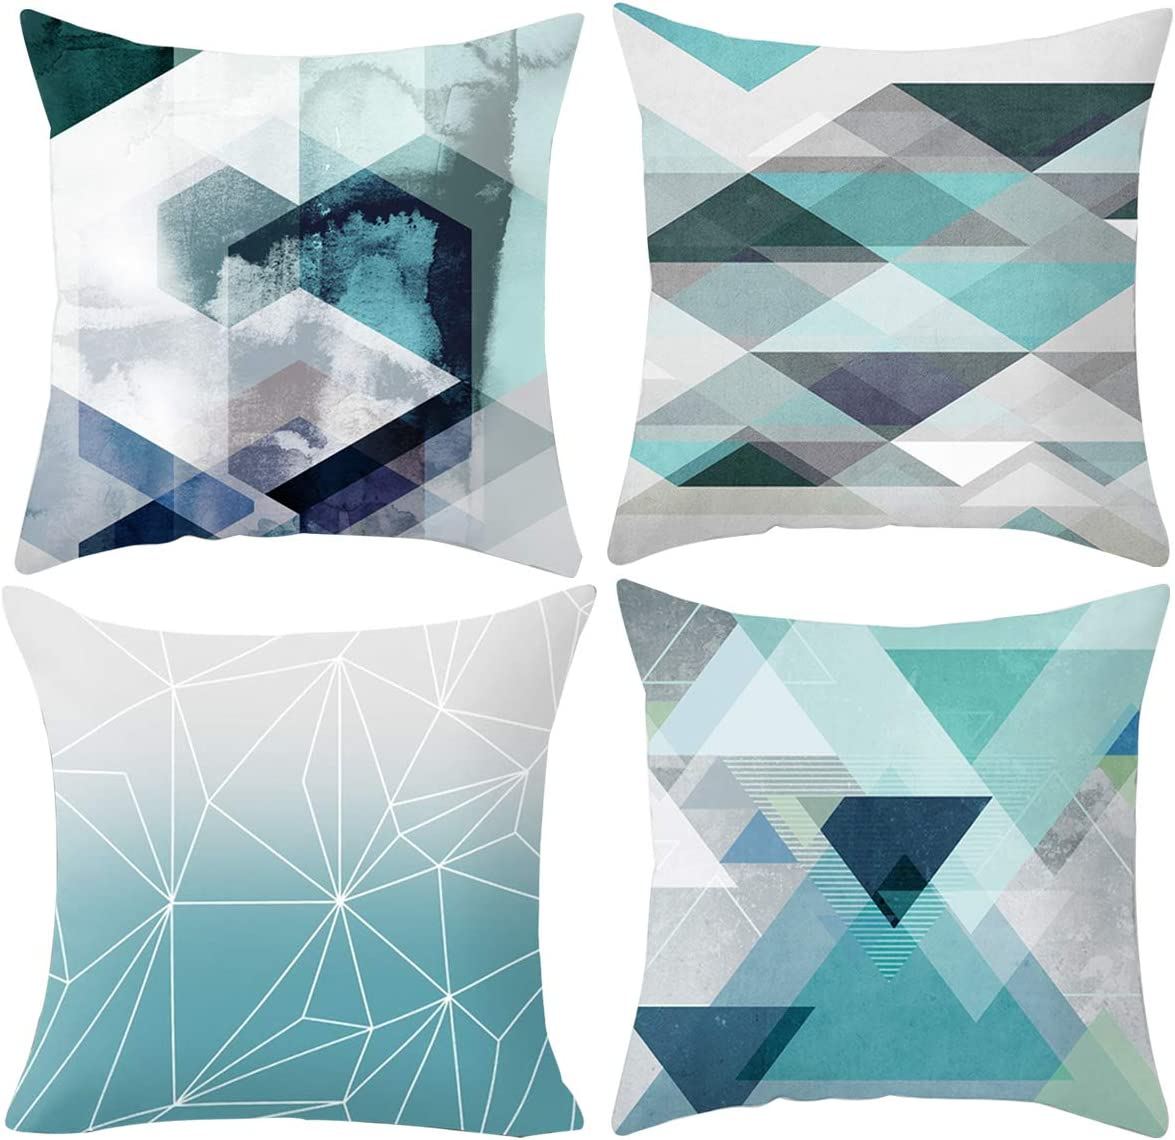 Treely Decorative Pillow Covers 18x18 Inches Geometric Throw Pillow Cover, Teal-Gray, 4 Pack